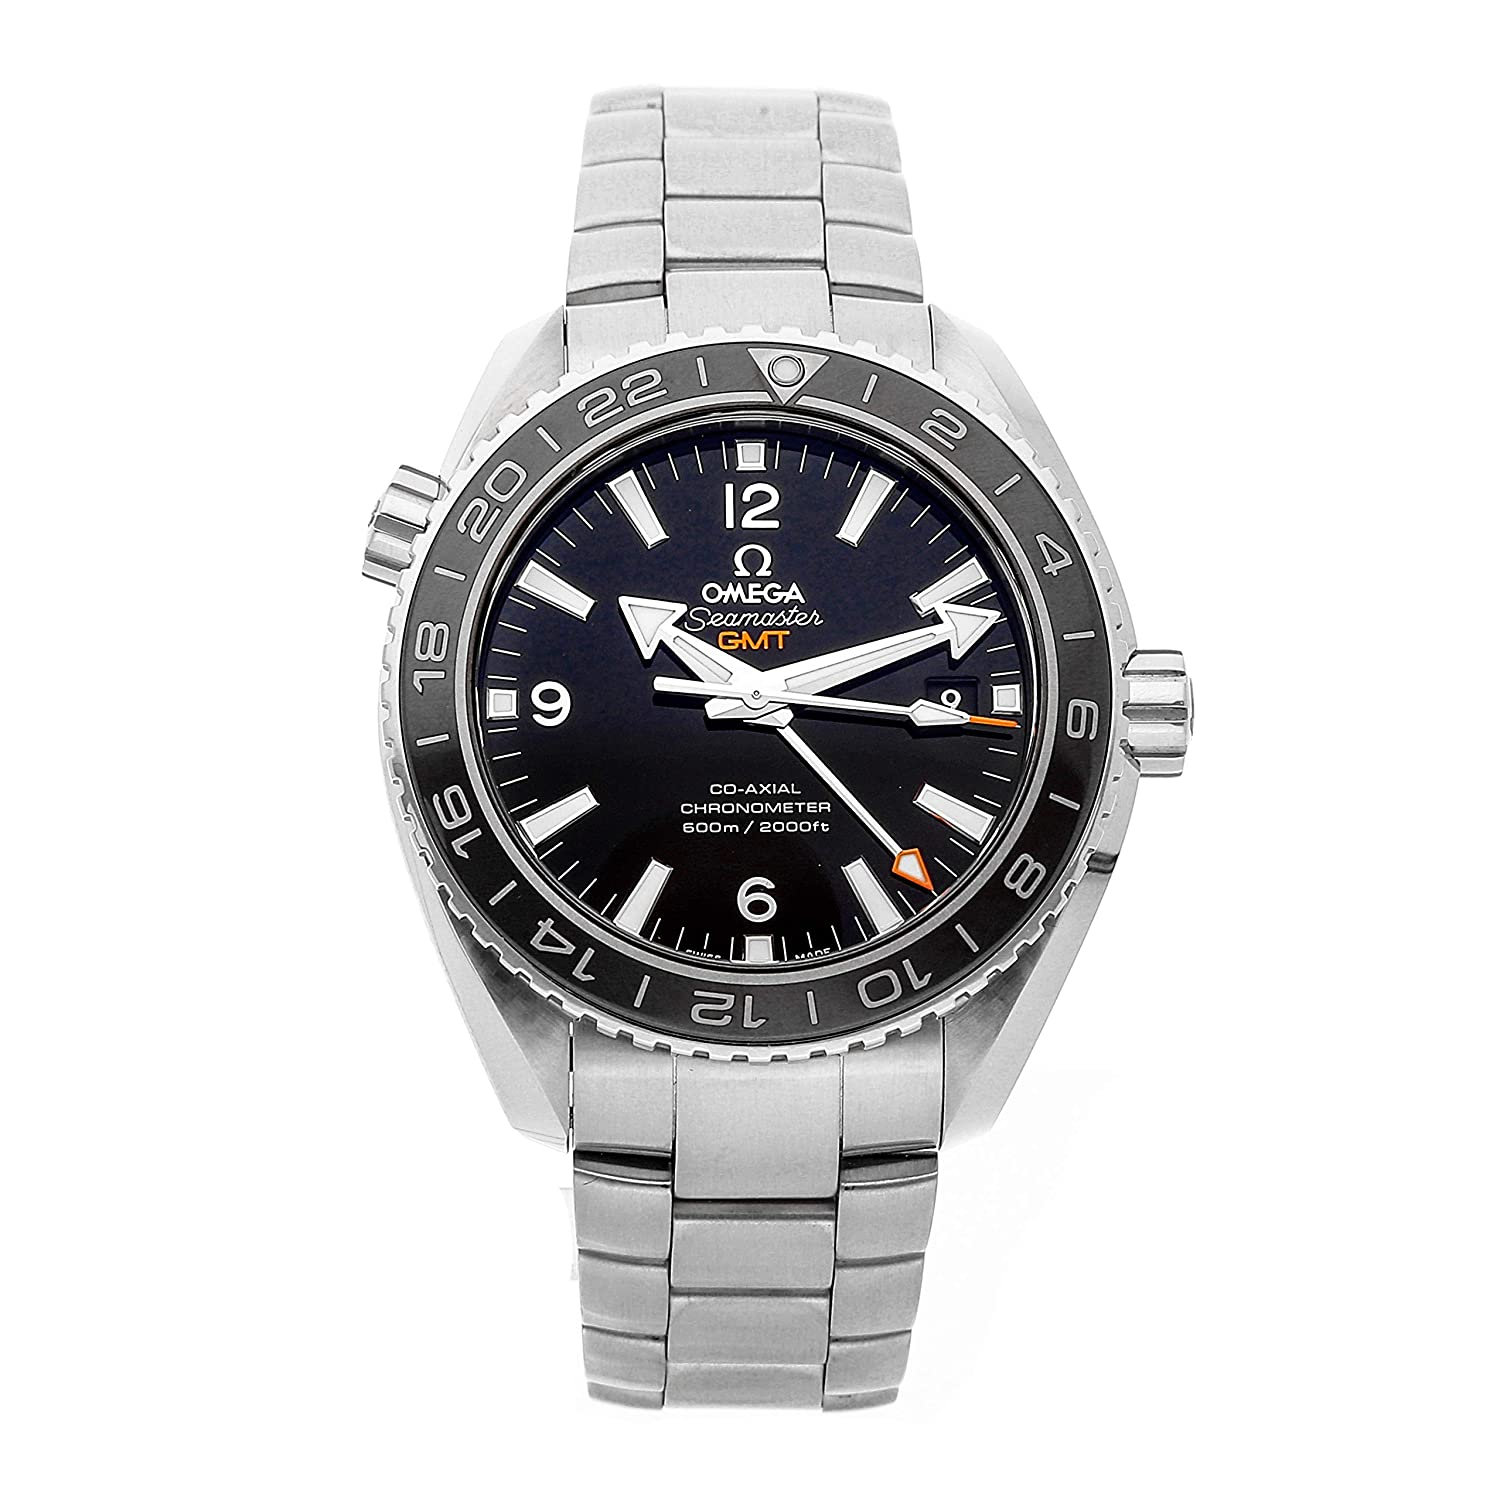 Omega Seamaster Planet Ocean 600m Co-axial GMT 43,5 mm 232.30.44.22.01.001